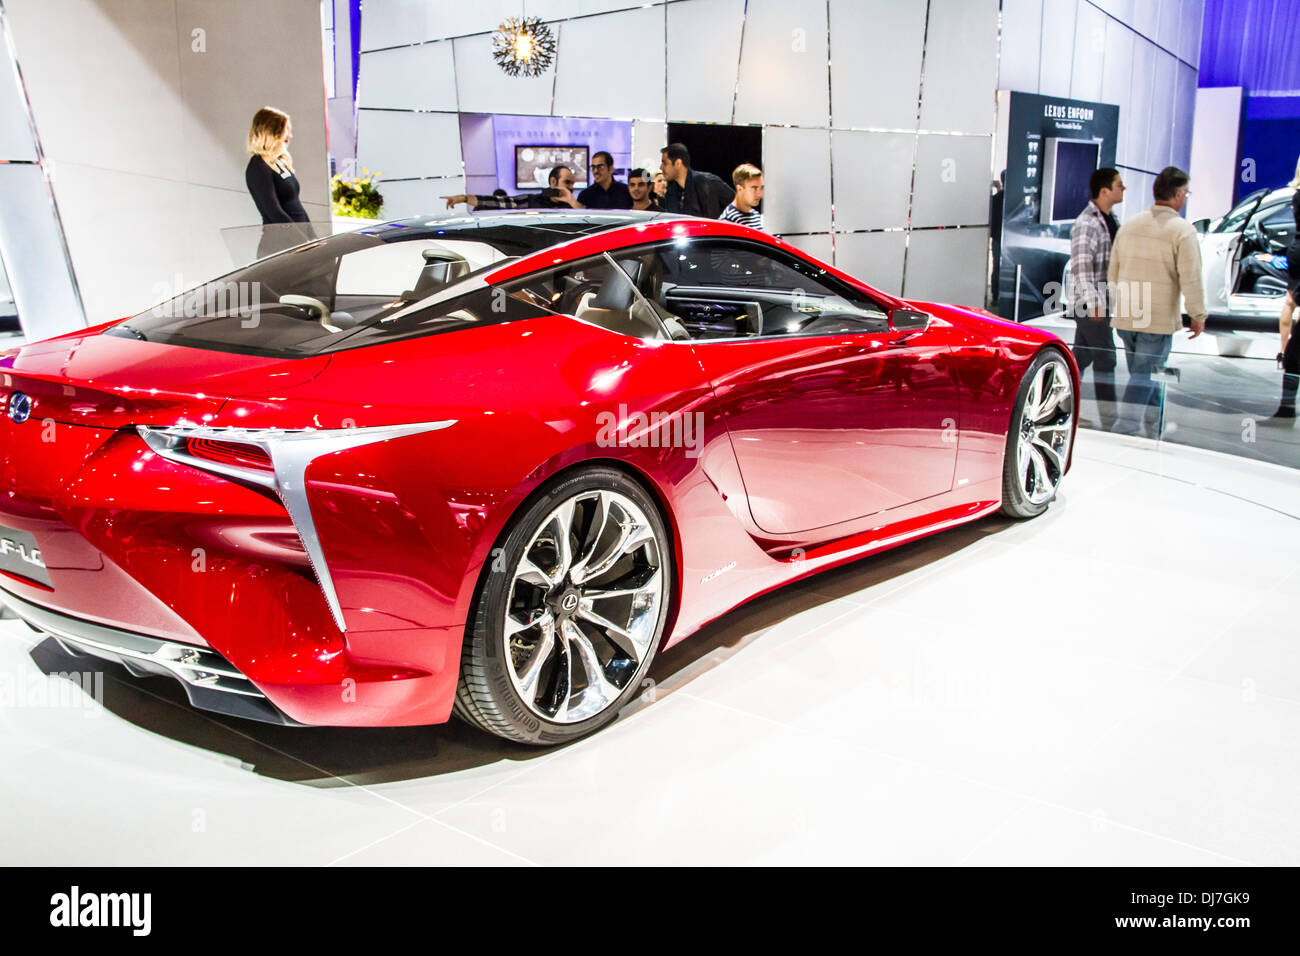 The Lexus LF LC At The 2013 Los Angeles International Auto Show   Stock  Image